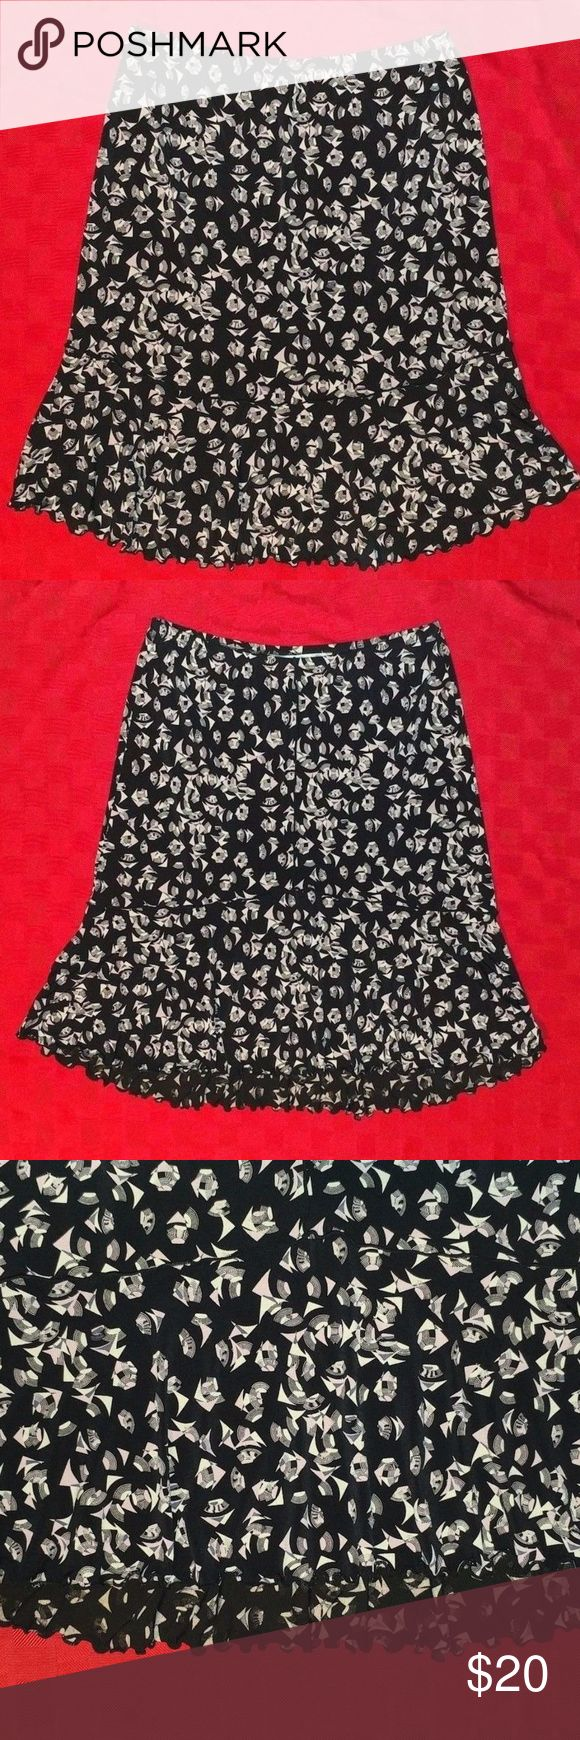 "Max Studio Trumpet Stretch Skirt Size S This is pre-owned in good condition. No holes or stains.   Waist: 29"" Length: 22"" Front & 24"" Back  BT4 Max Studio Skirts Midi"